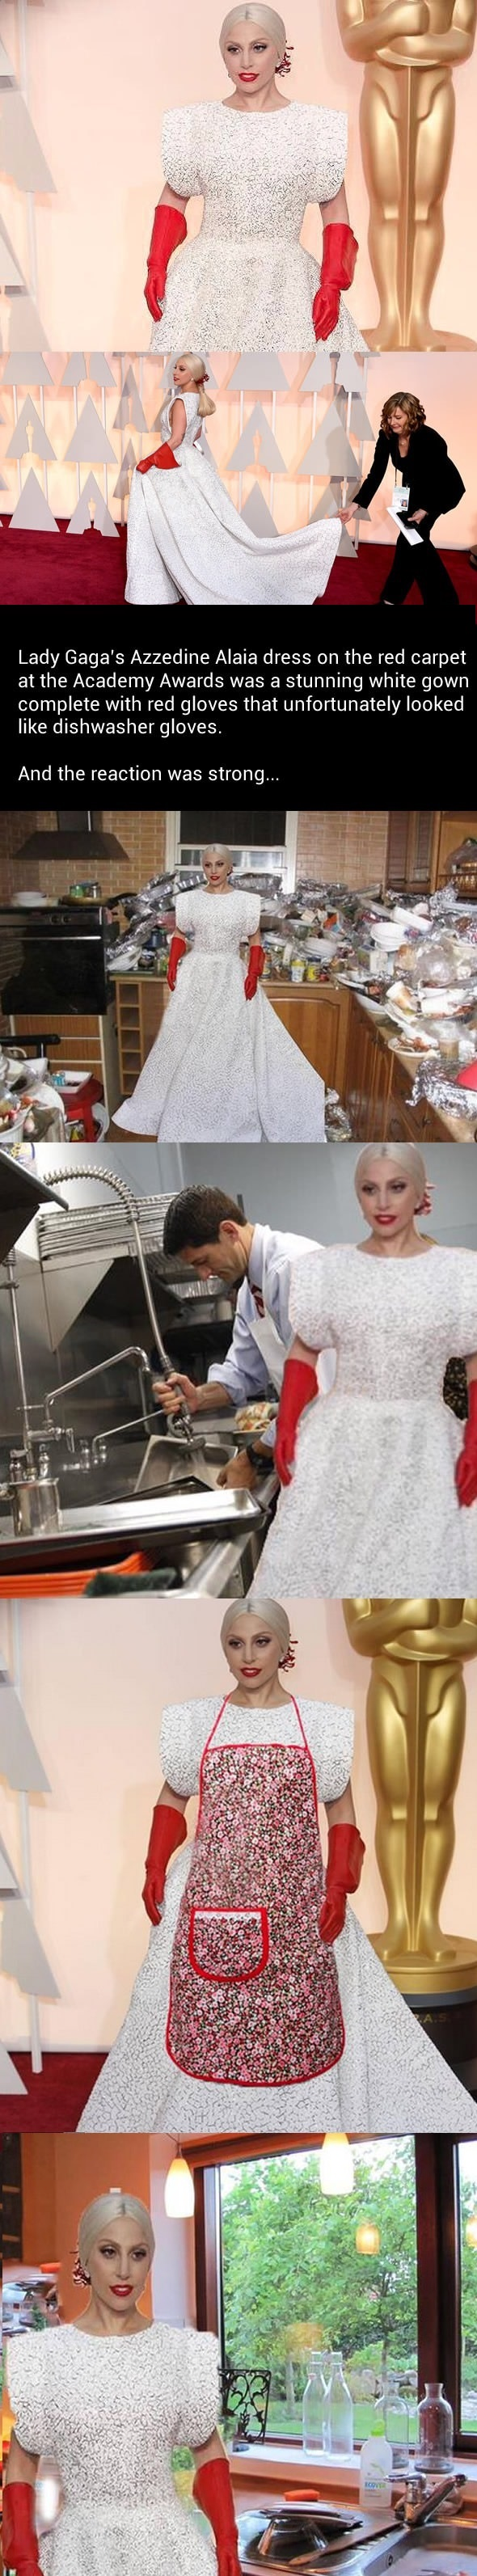 lady-gaga-outfit-oscars-gloves